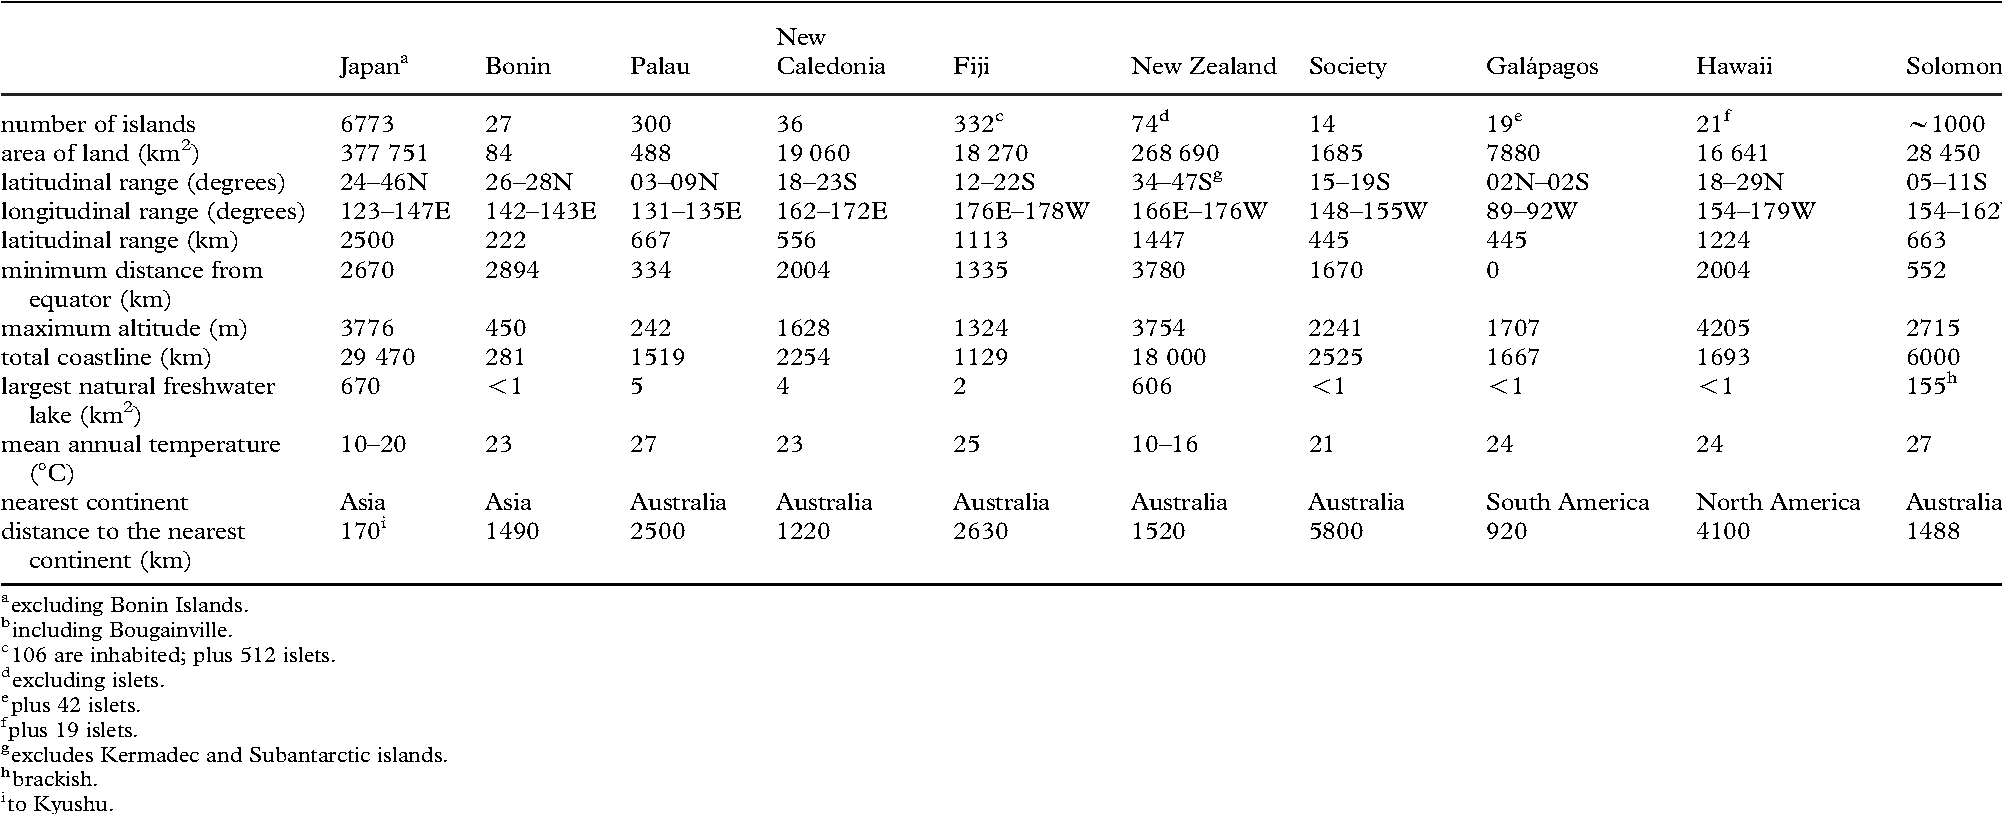 Table 1. Summary of key physiogeographic features of ten exemplar archipelagos in the Pacific Ocean.